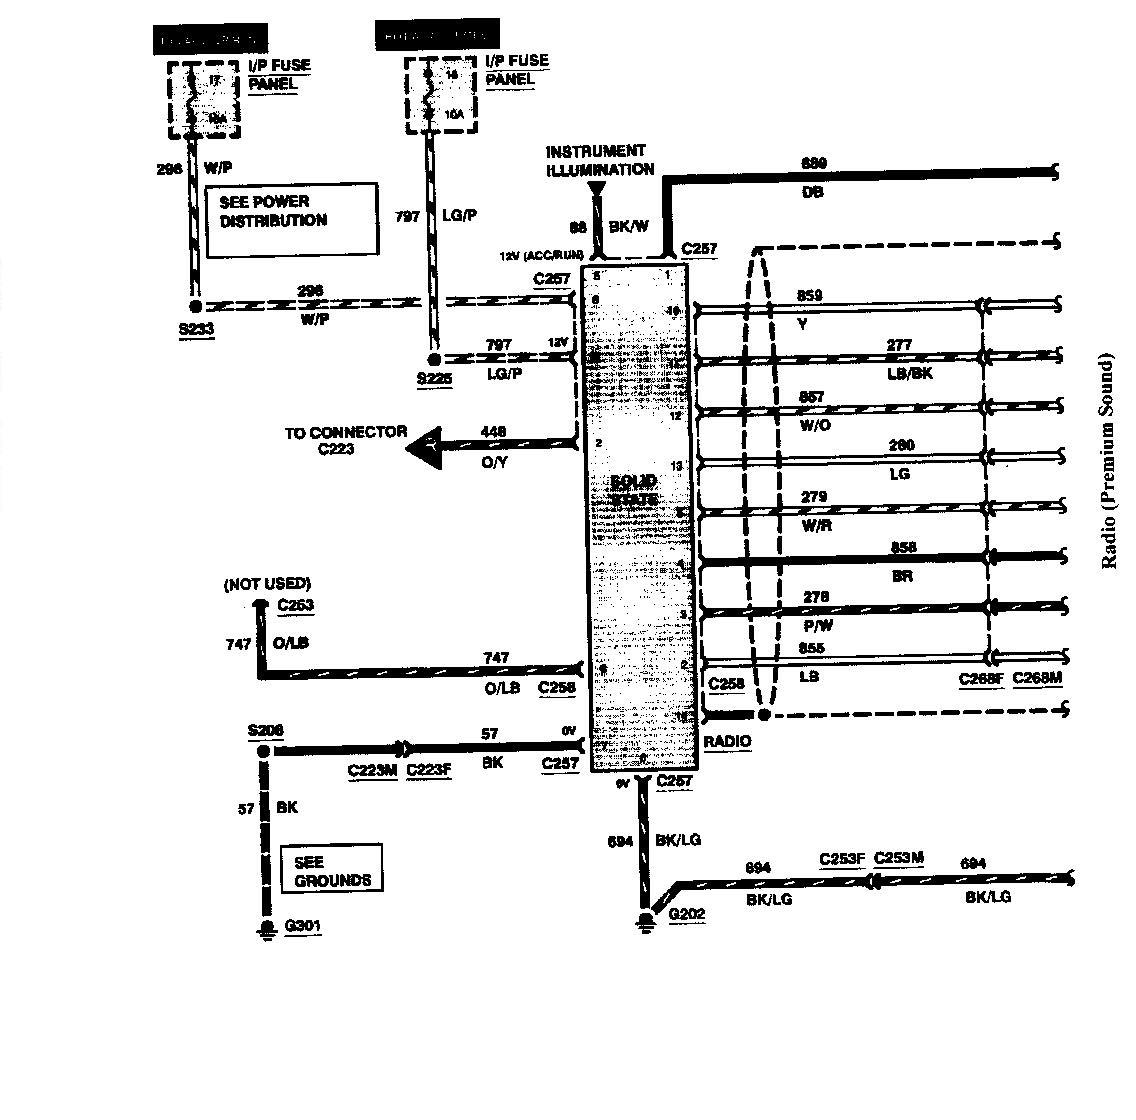 95Mark8 Premium Sound Wiring 95 mark 8 jbl wiring diagram needed lincolns online message forum 1999 Lincoln Town Car Wiring Diagram at n-0.co